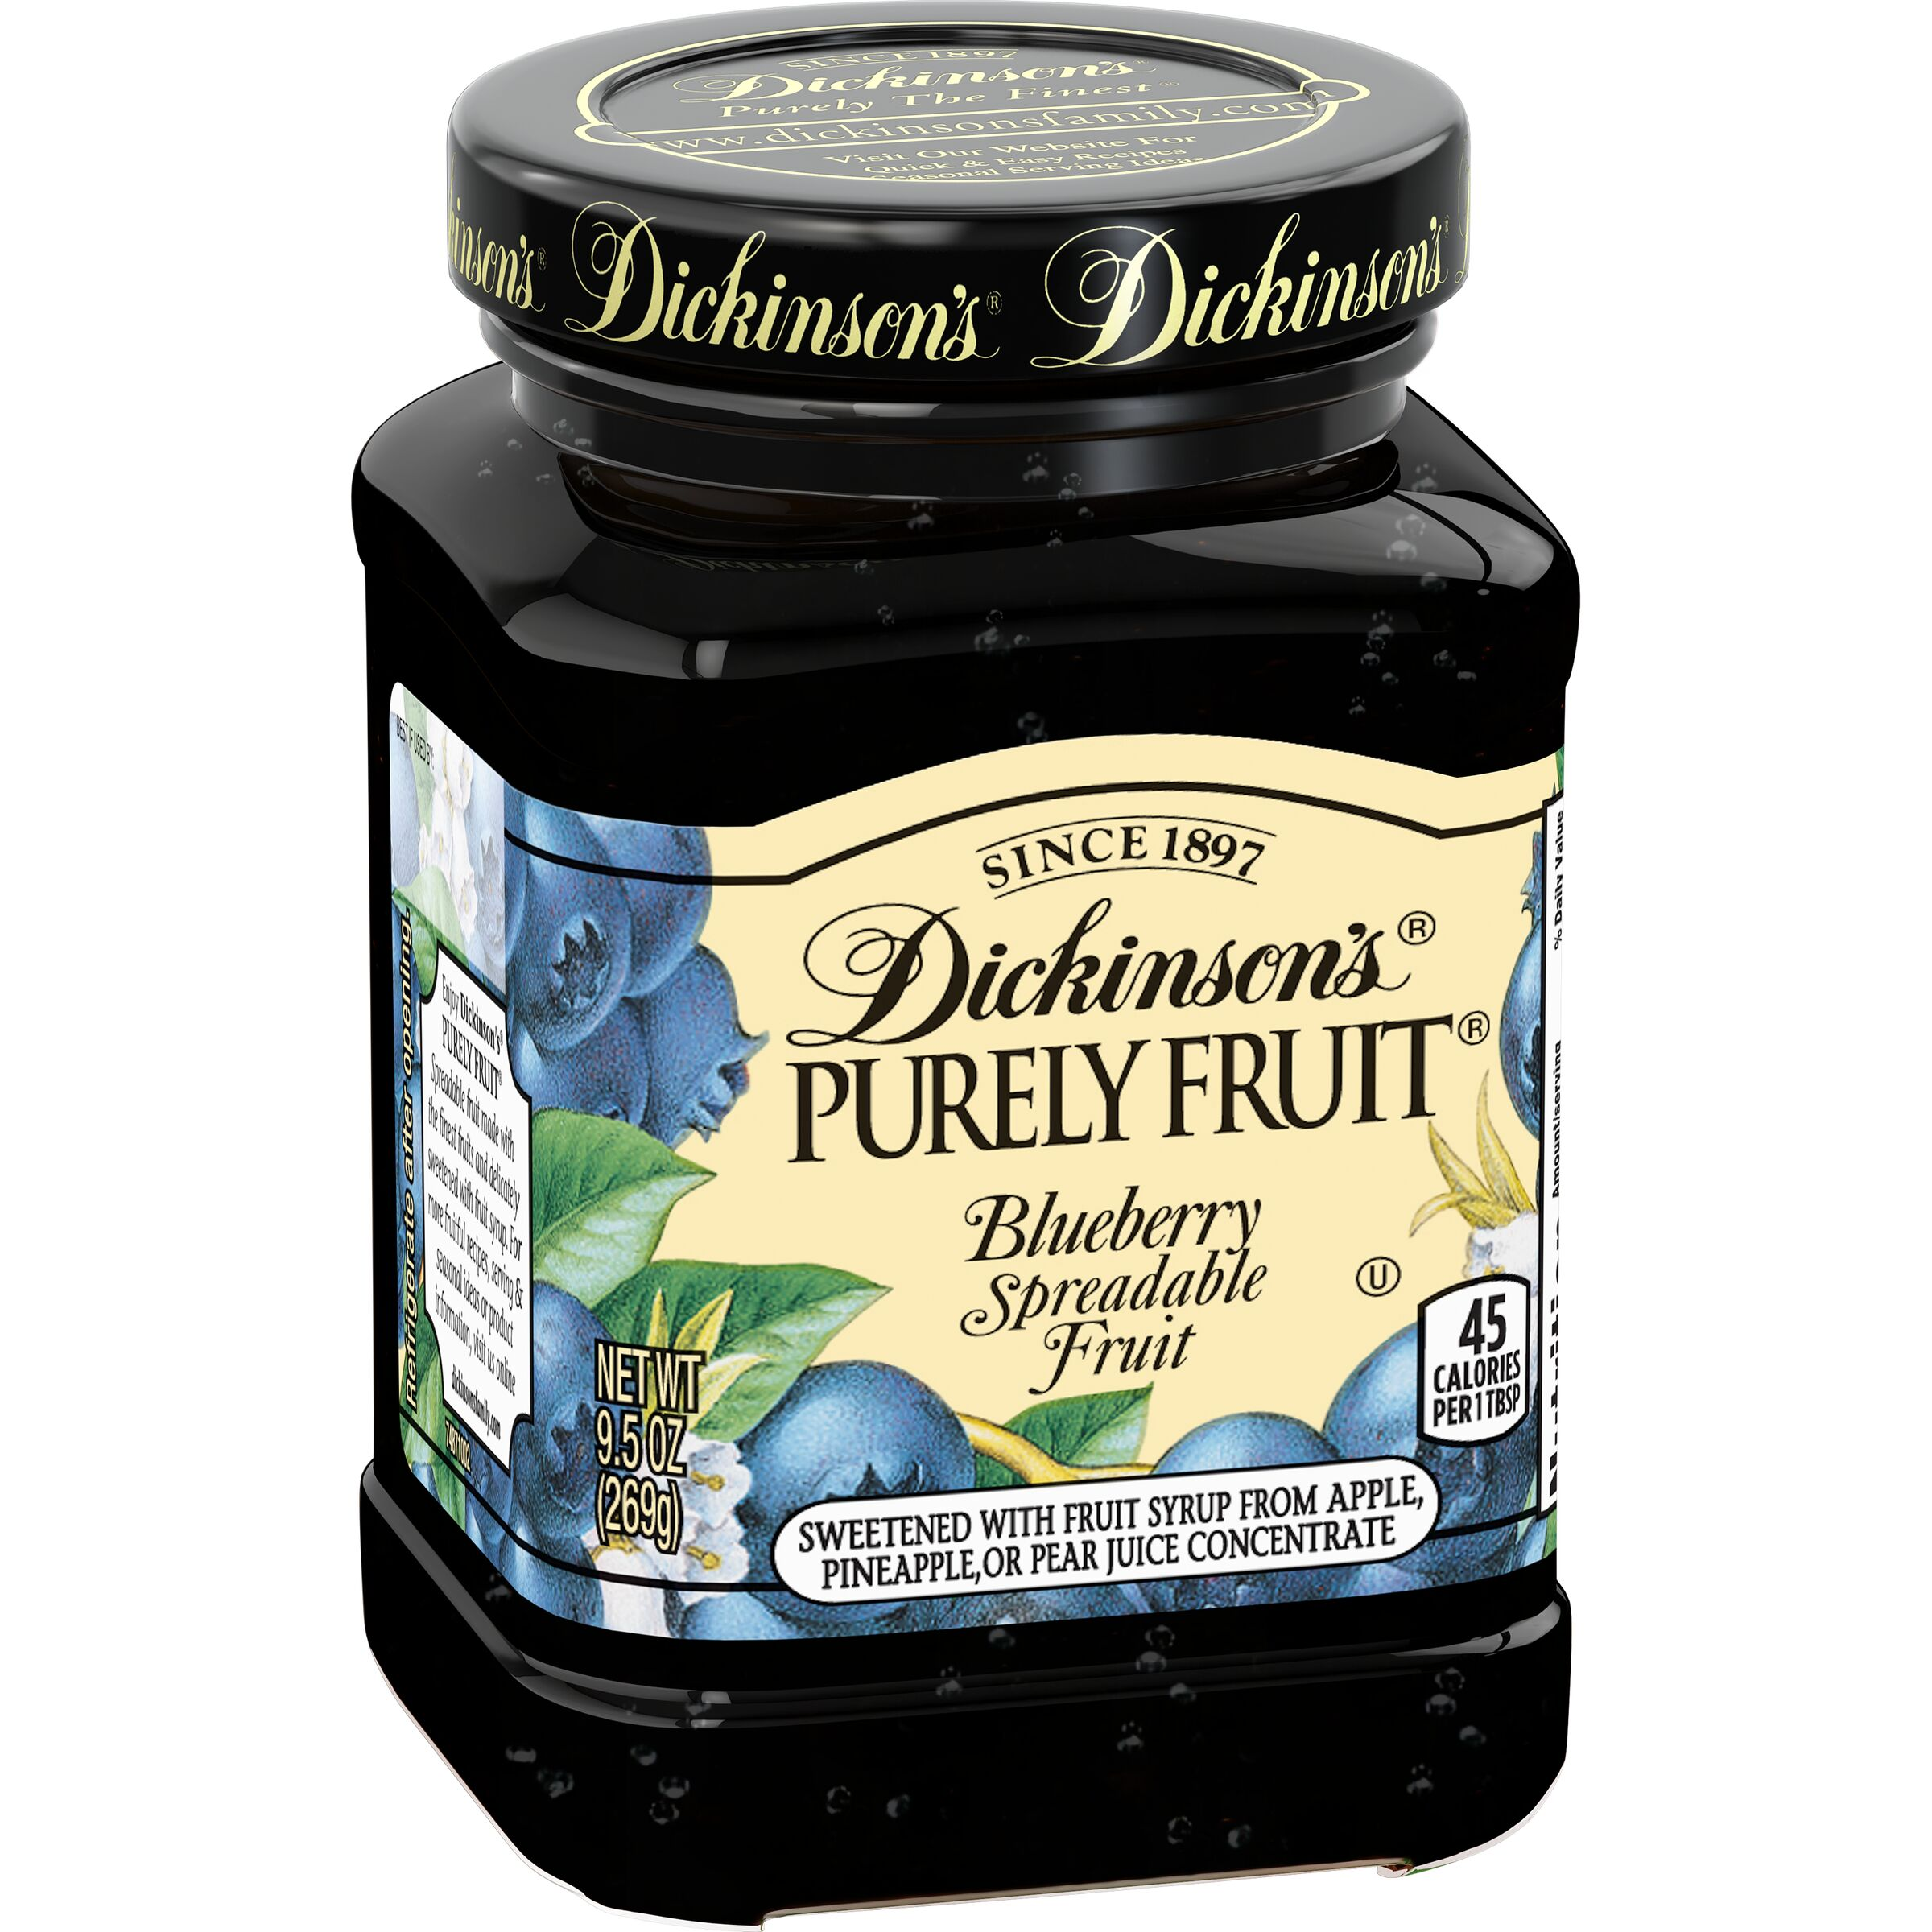 Dickinson's Purely Fruit Blueberry Spreadable Fruit